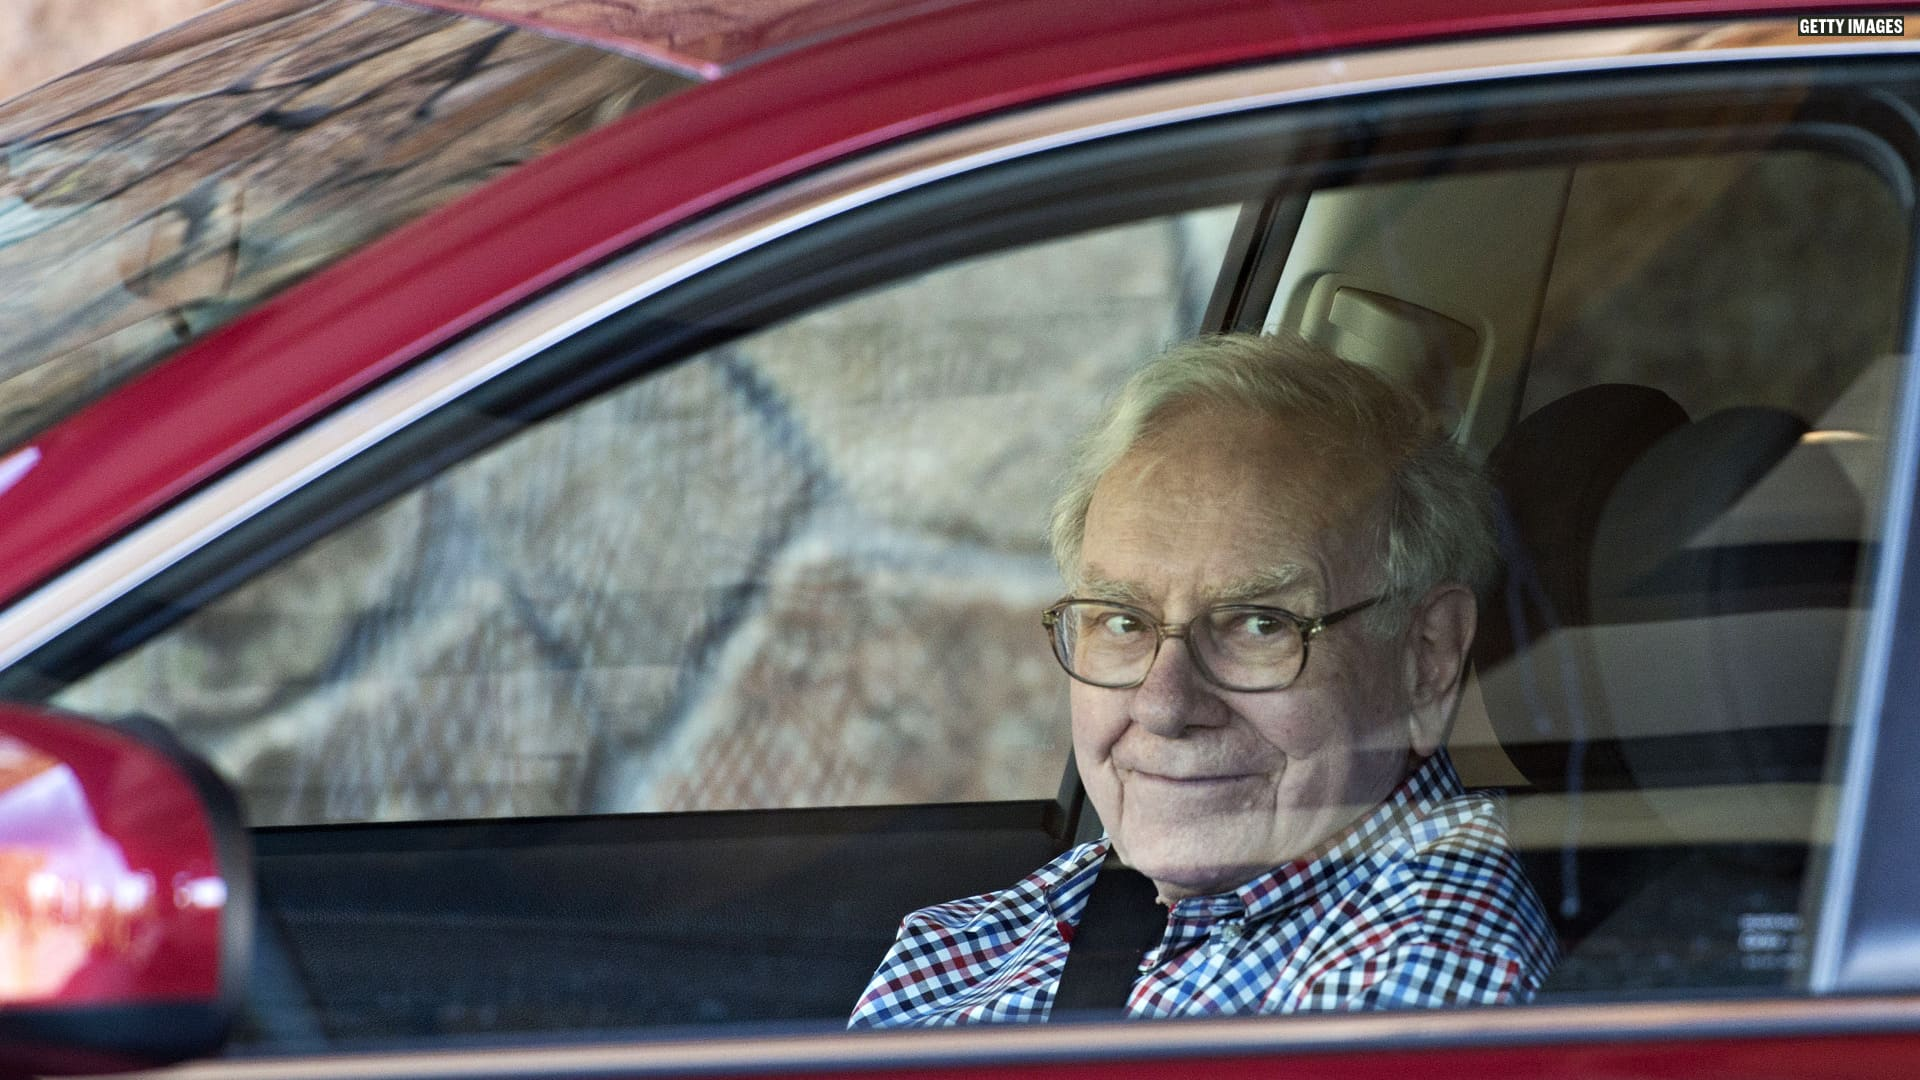 Bill and Melinda Gates identify the secret to Warren Buffett's success, and science agrees